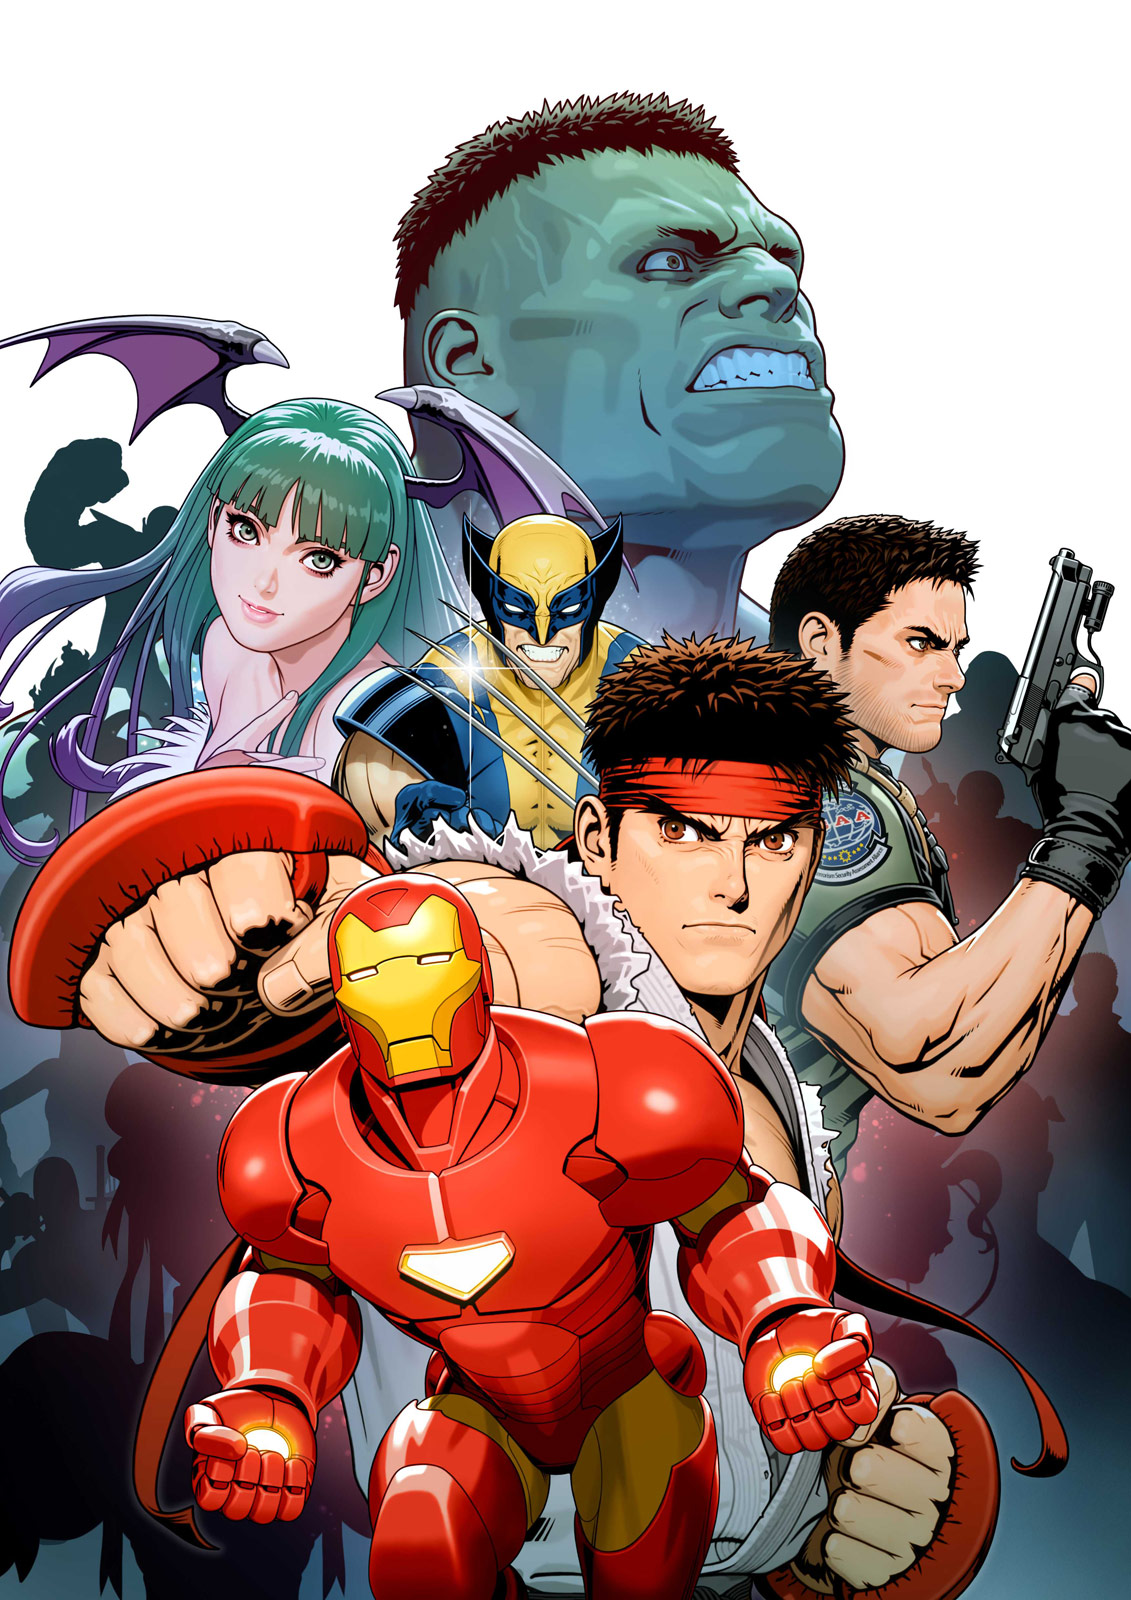 Marvel vs. Capcom 3 collage artwork #1